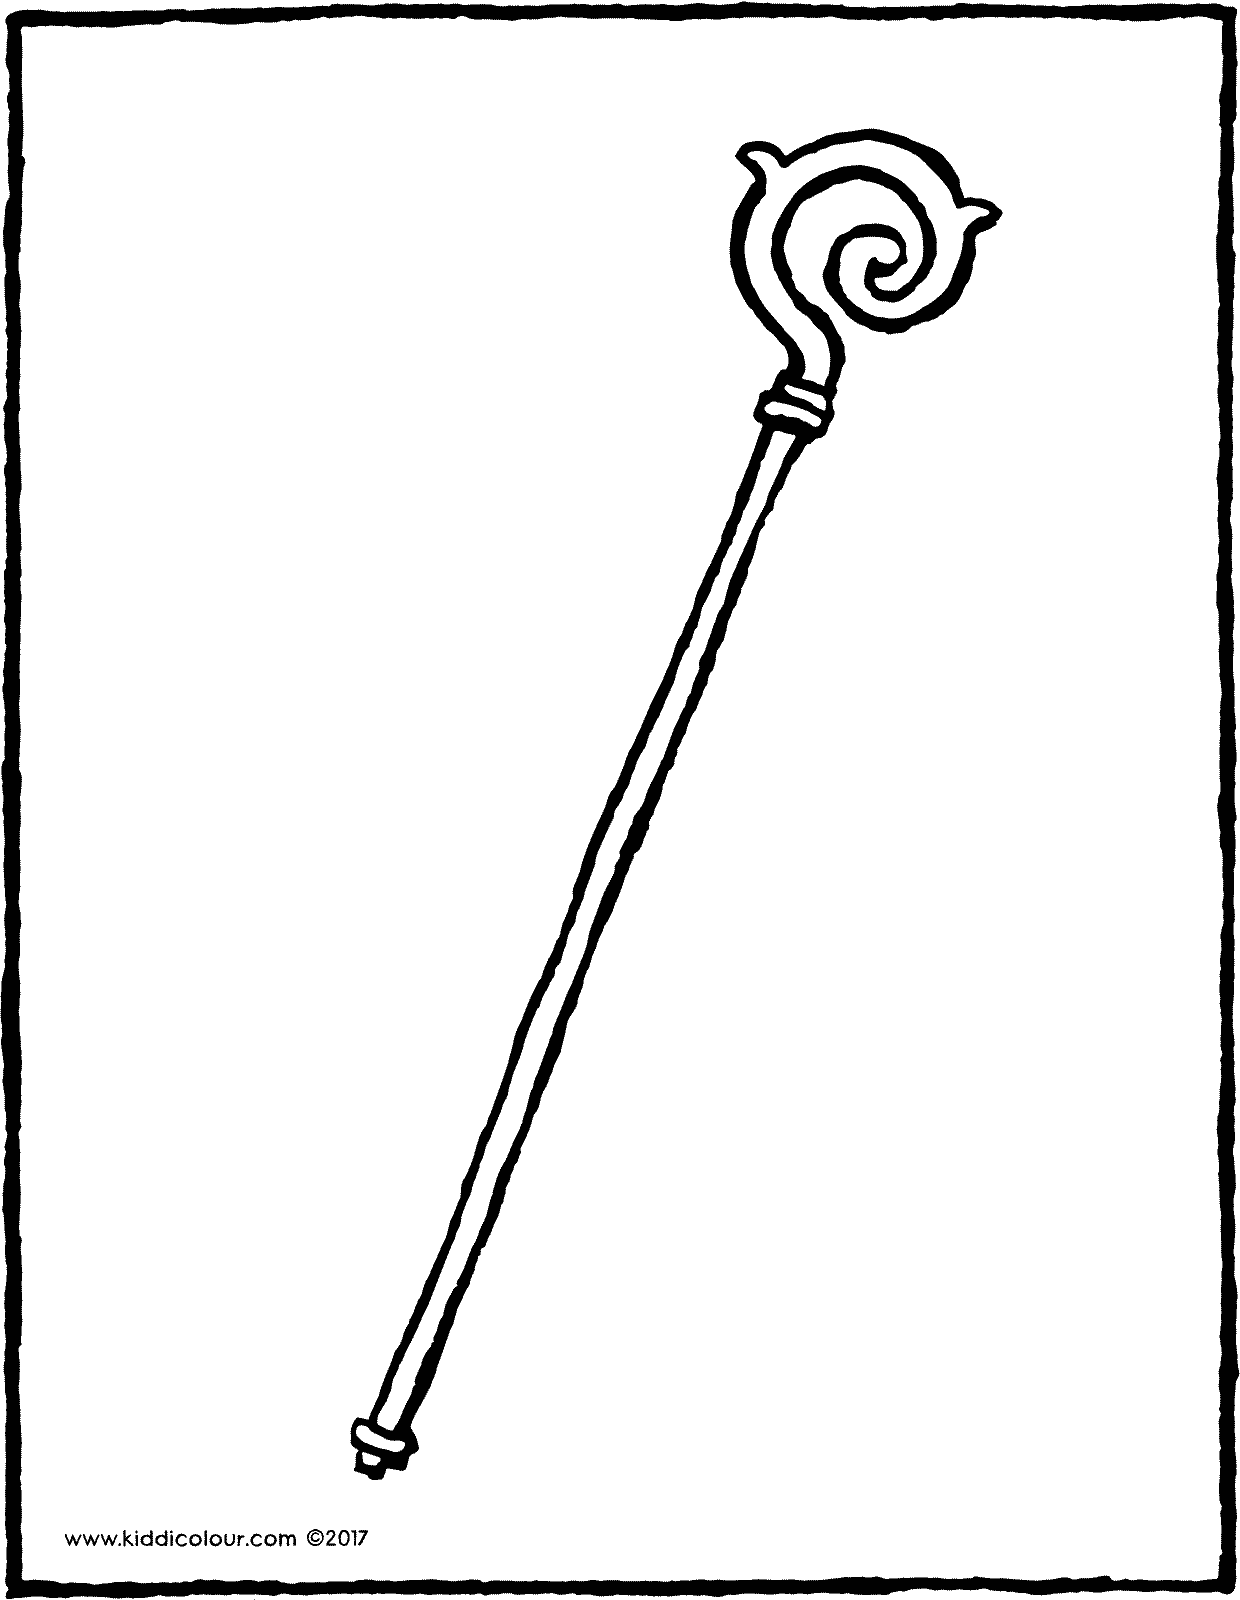 Saint Nicholas' staff colouring page page drawing picture 01V